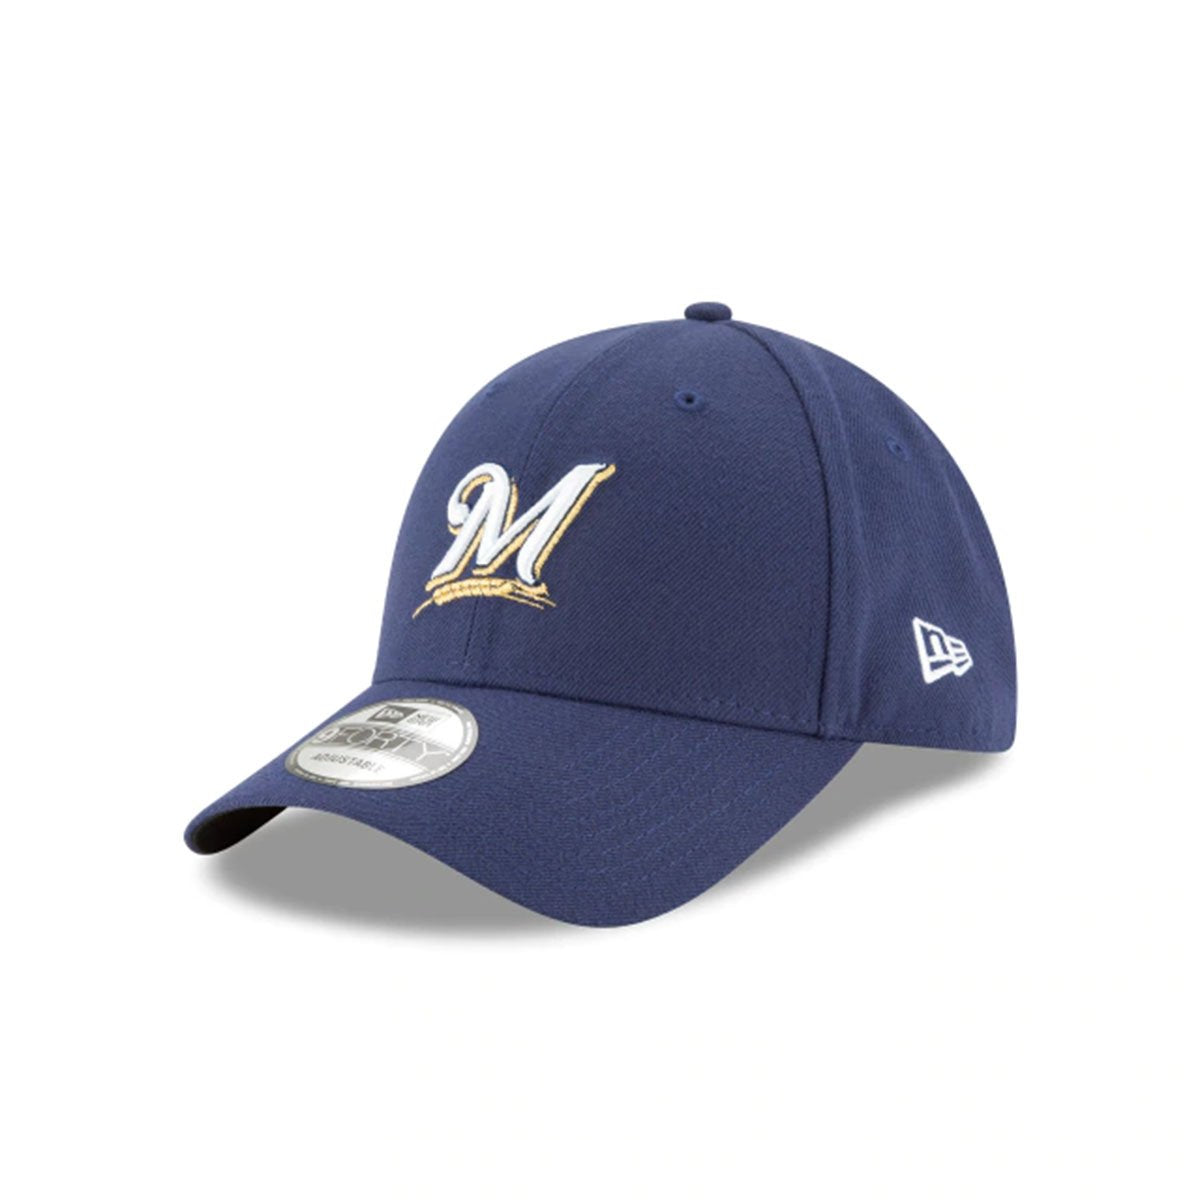 MILWAUKEE BREWERS 9FORTY ADJUSTABLE BLUE/WHITE